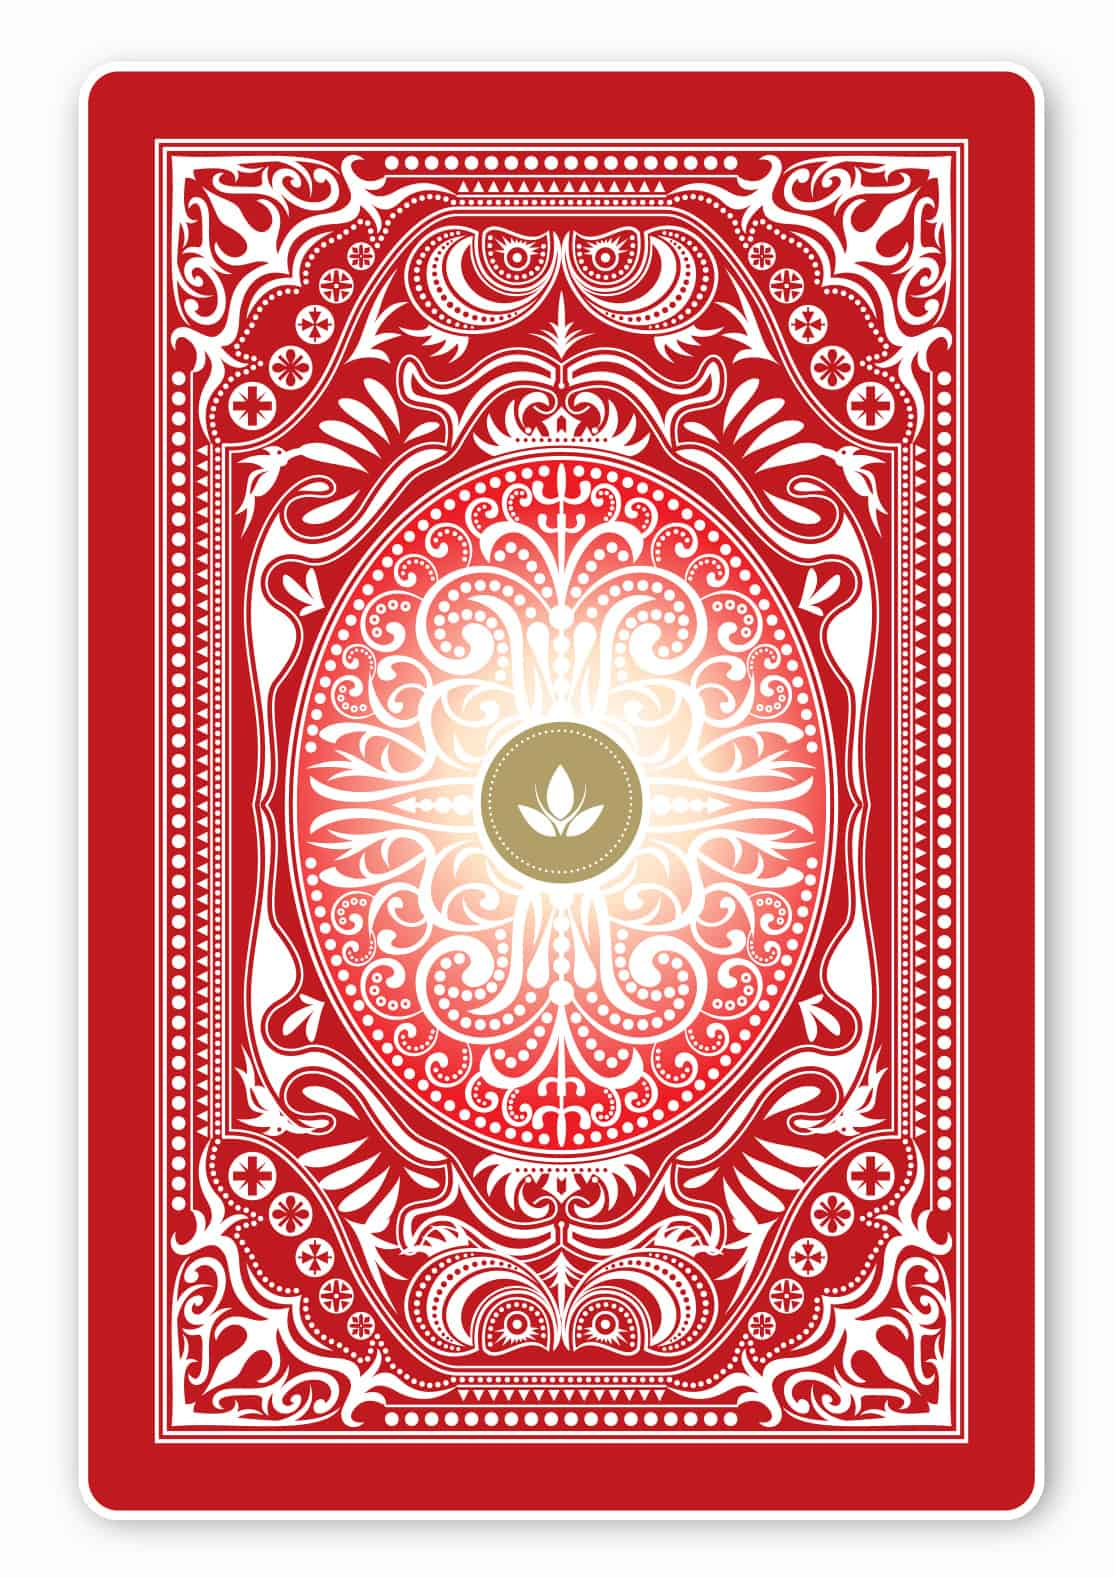 Spice Deck card back